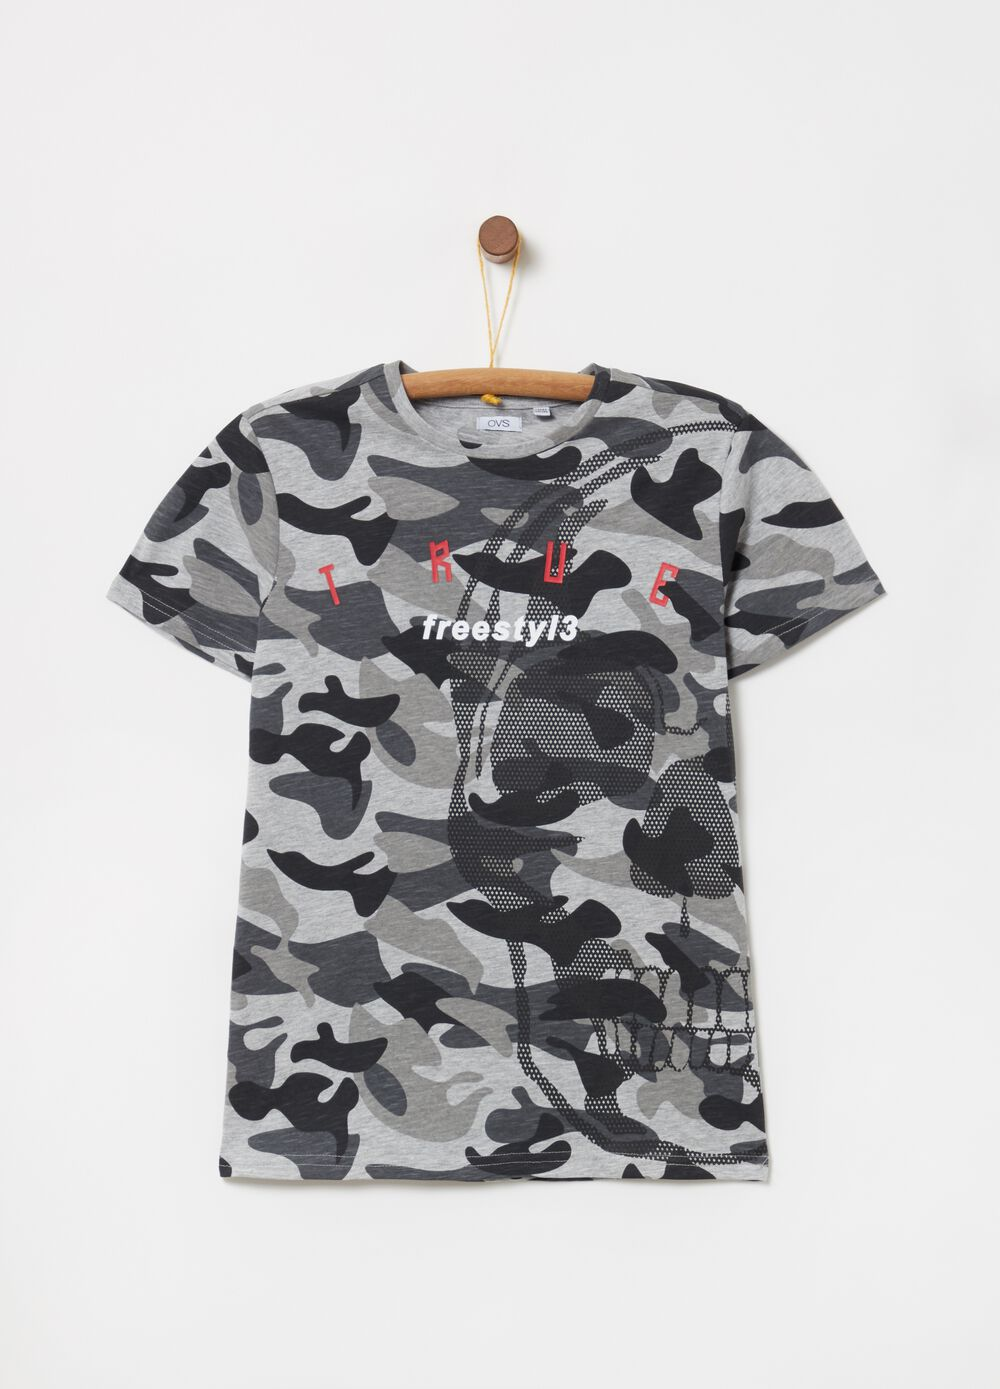 T-shirt in jersey fiammato camouflage